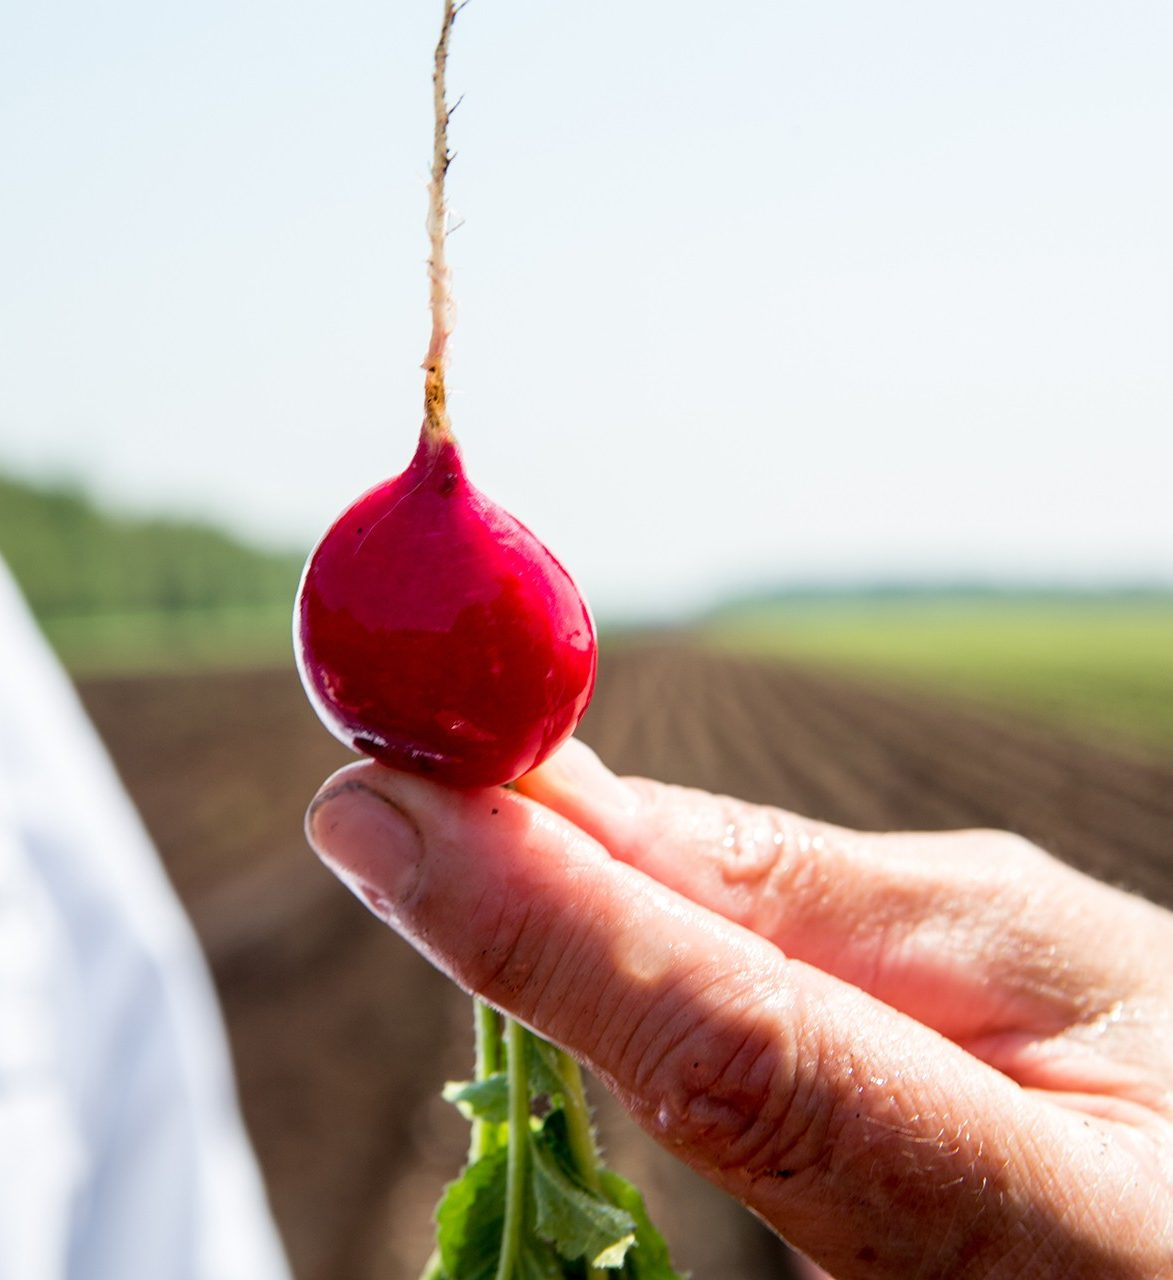 close-up of fingers holding a radish harvested from a field